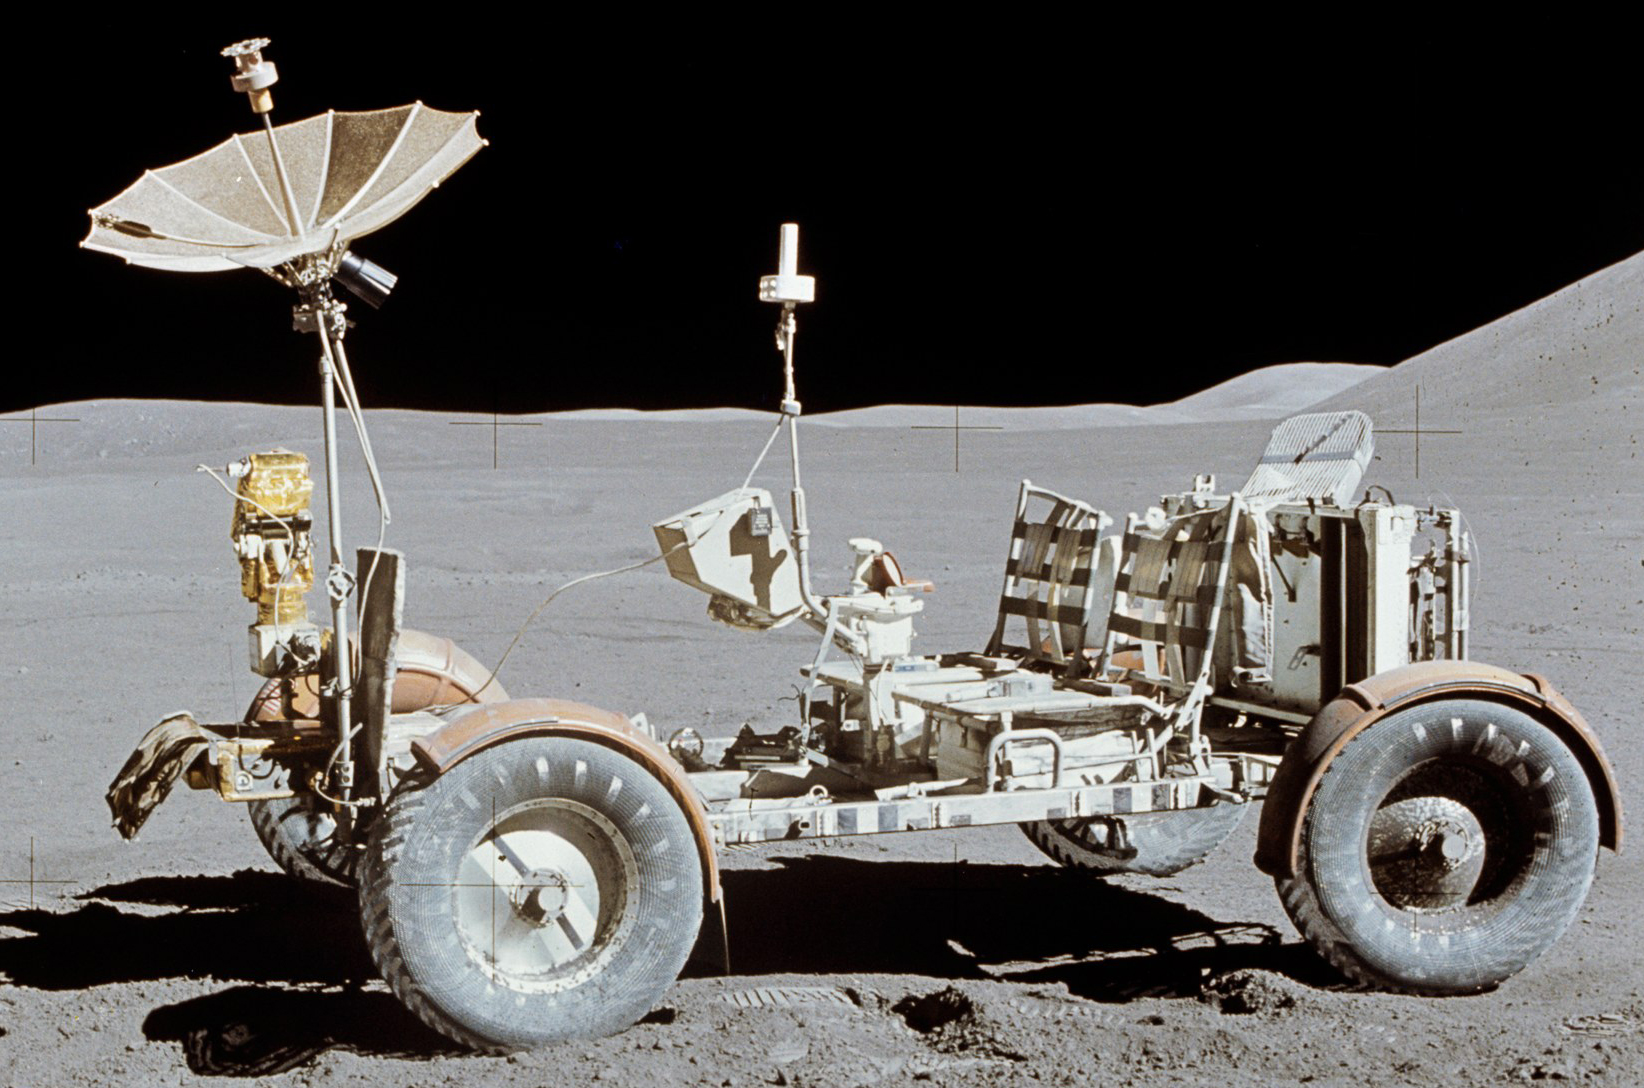 https://upload.wikimedia.org/wikipedia/commons/e/ed/Apollo15LunarRover.jpg